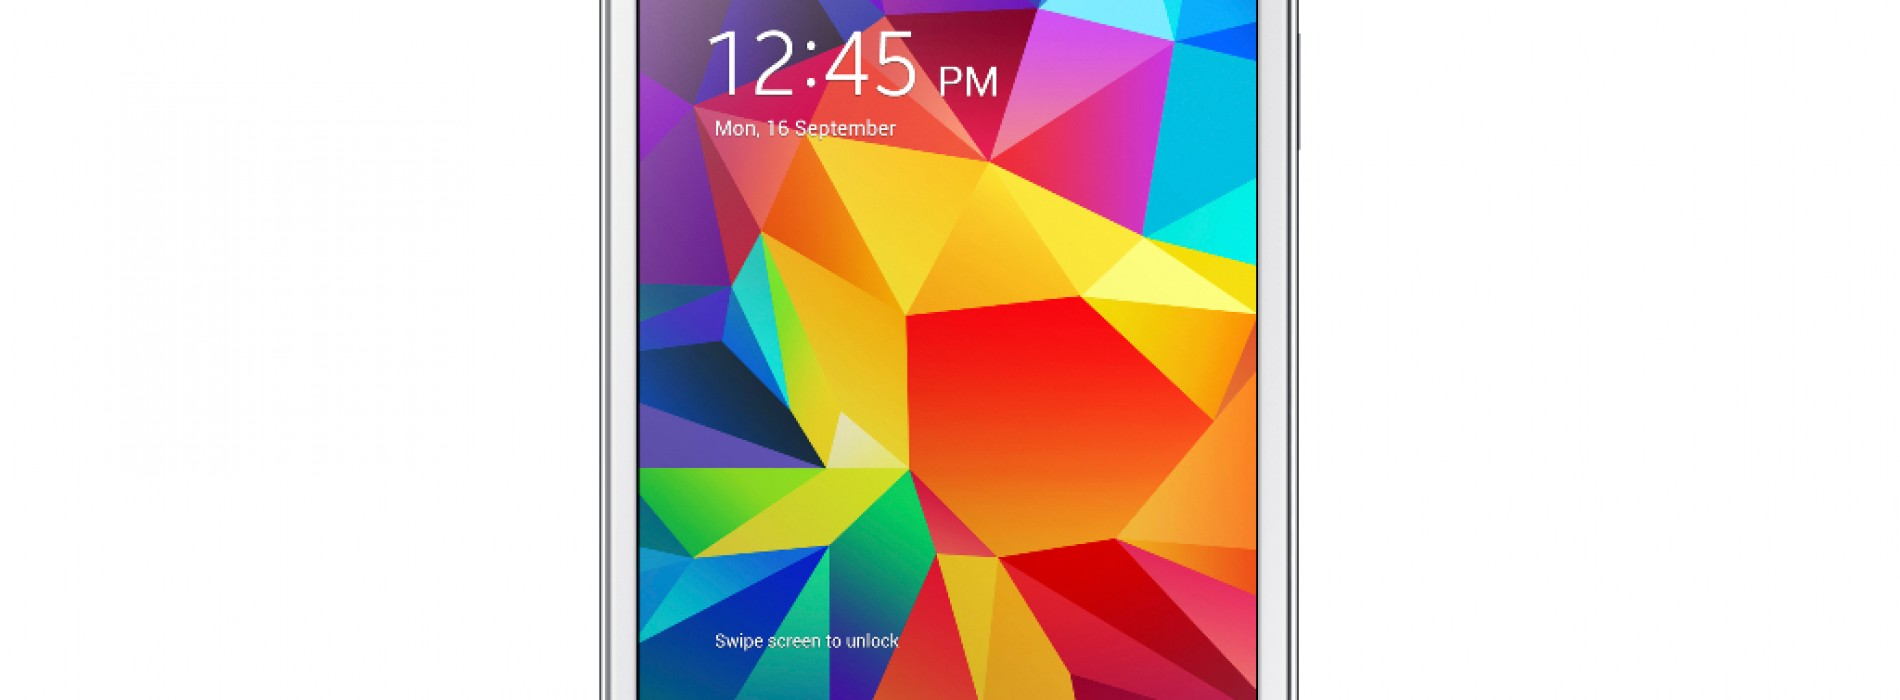 AT&T offering Samsung Galaxy Tab 4 8.0